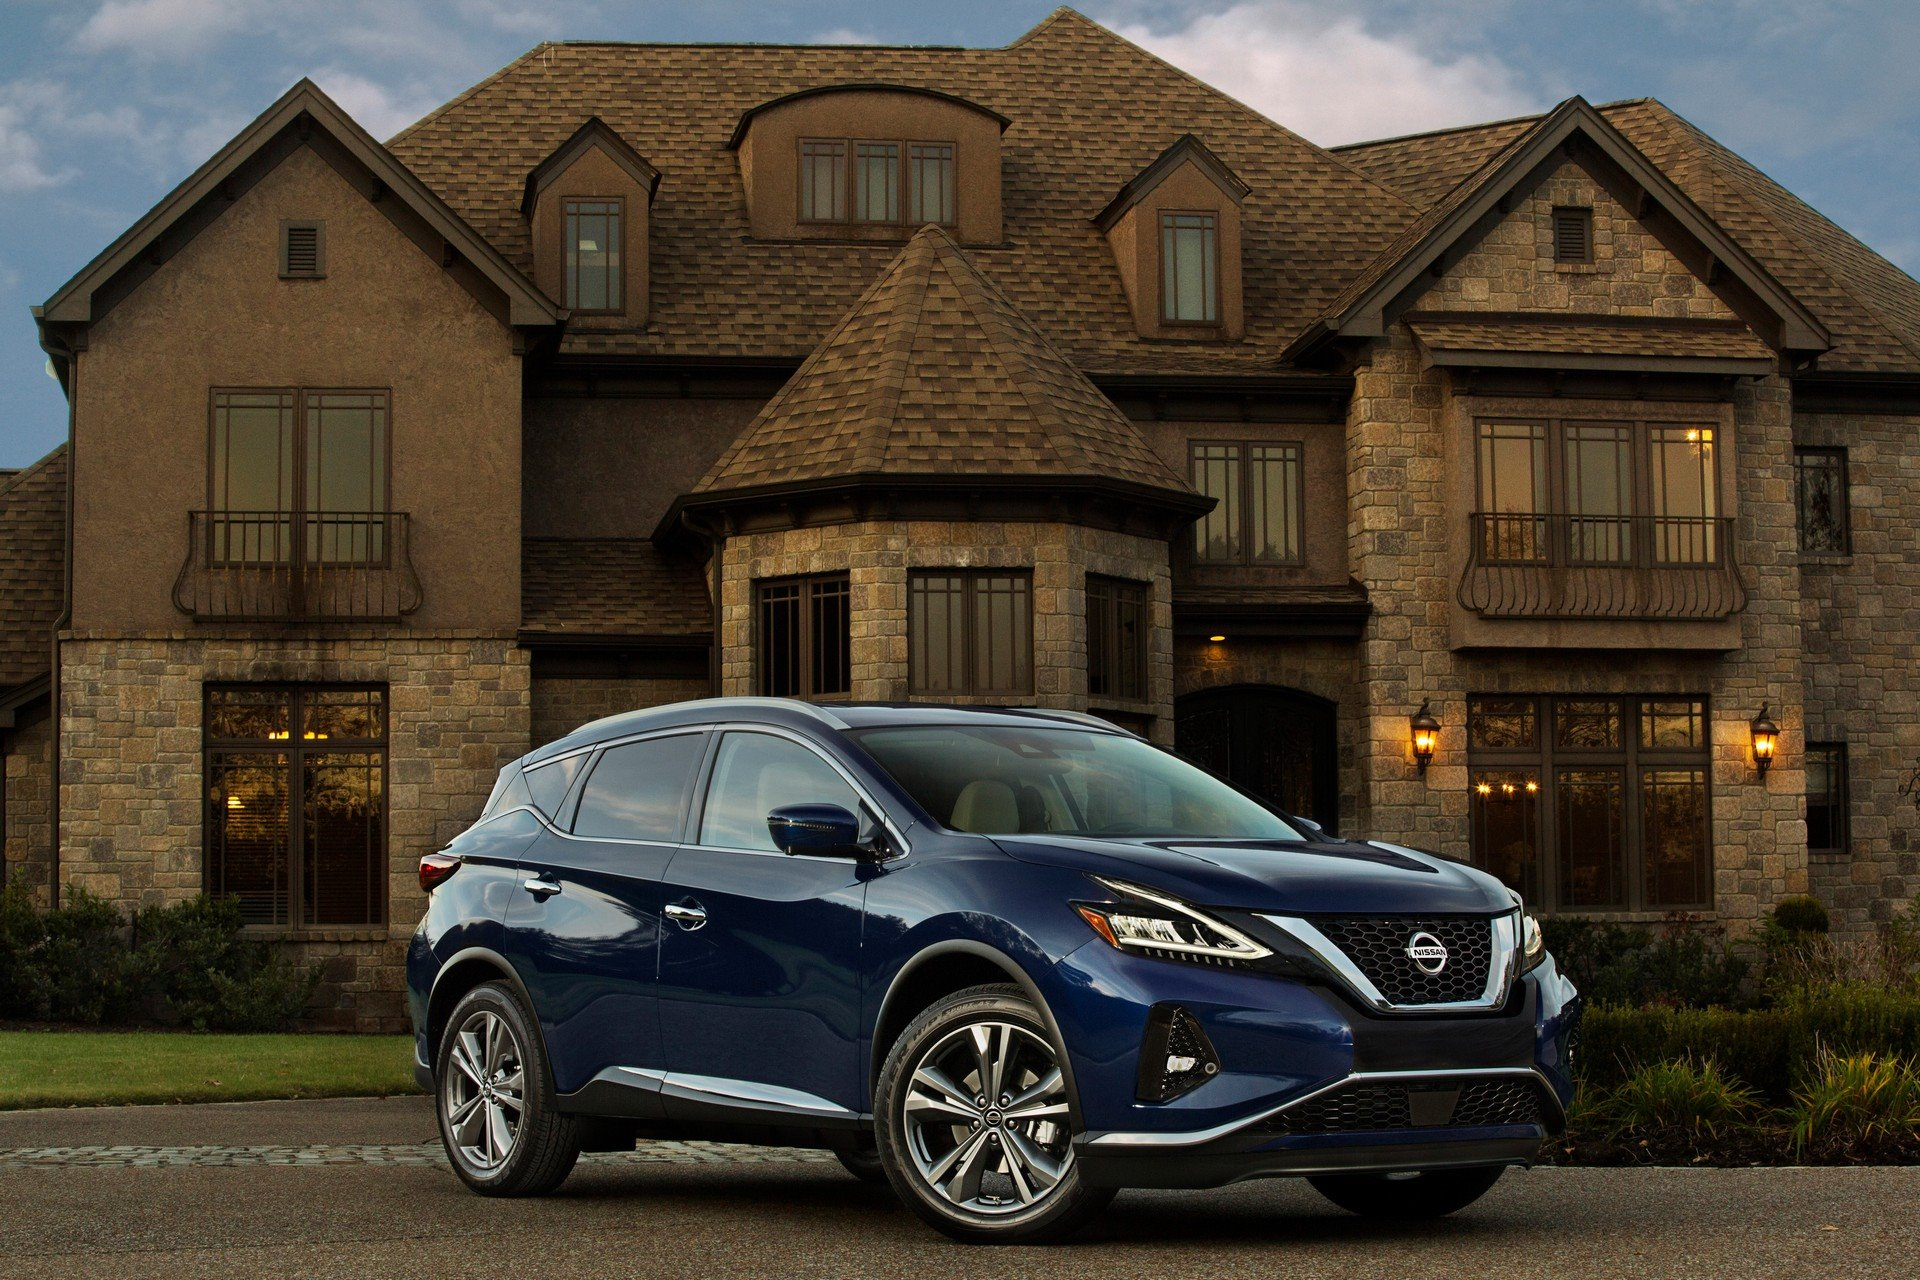 New 2019 Nissan Murano S S for sale $32,970 at M and V Leasing in Brooklyn NY 11223 1